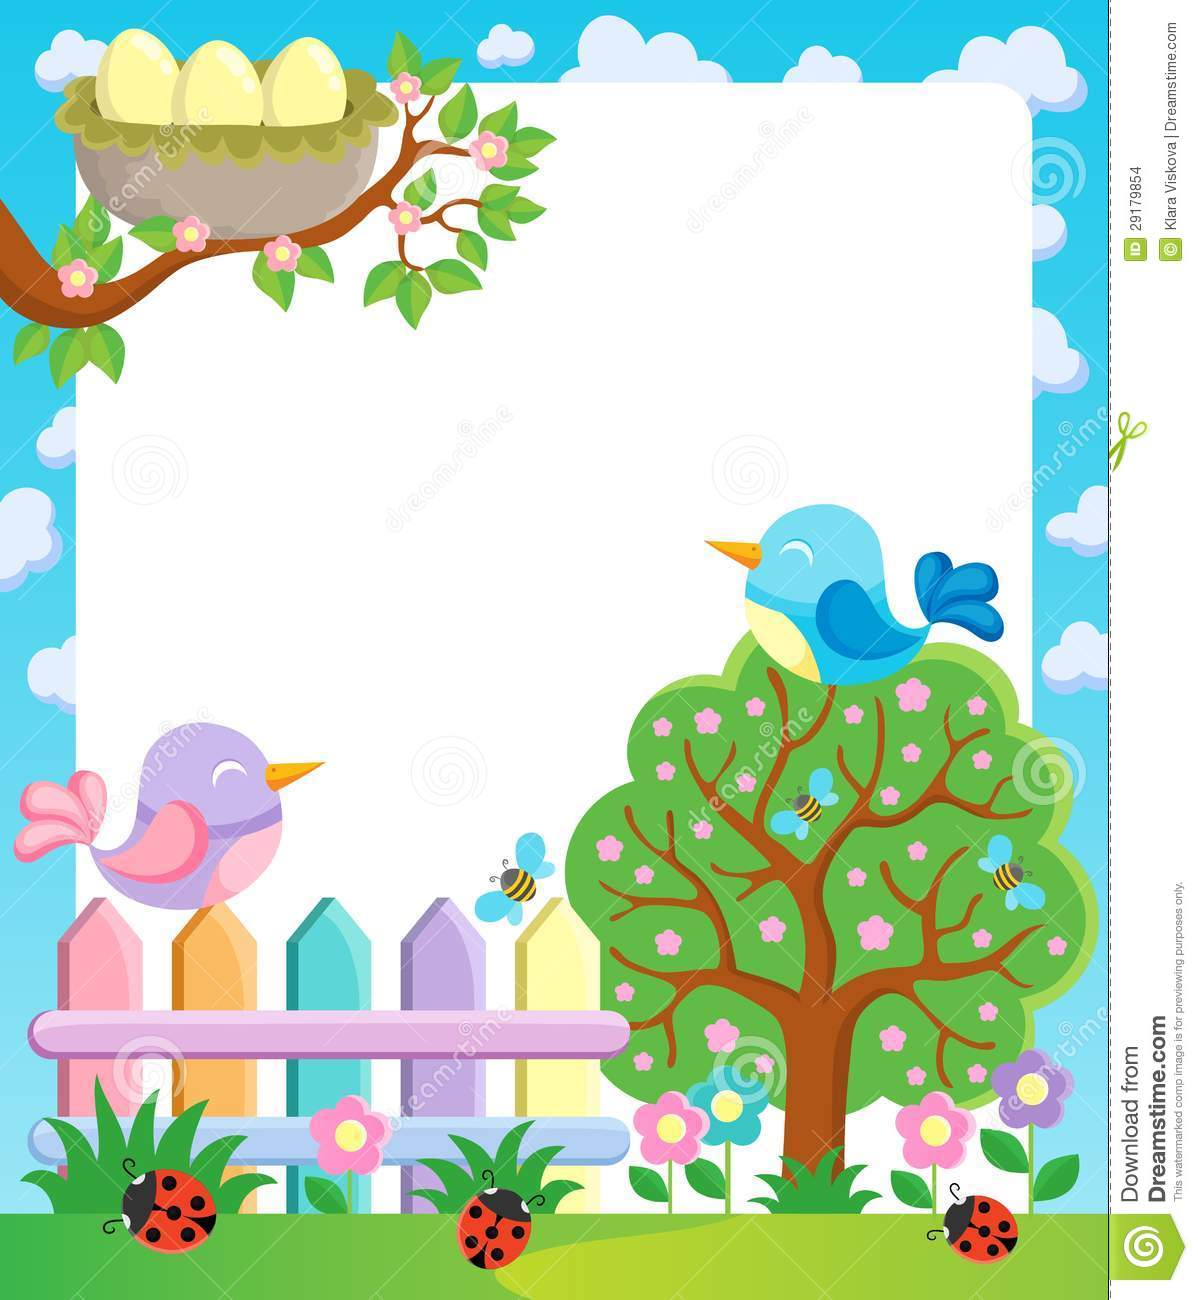 Frame with spring theme stock vector. Illustration of ladybug - 29179854